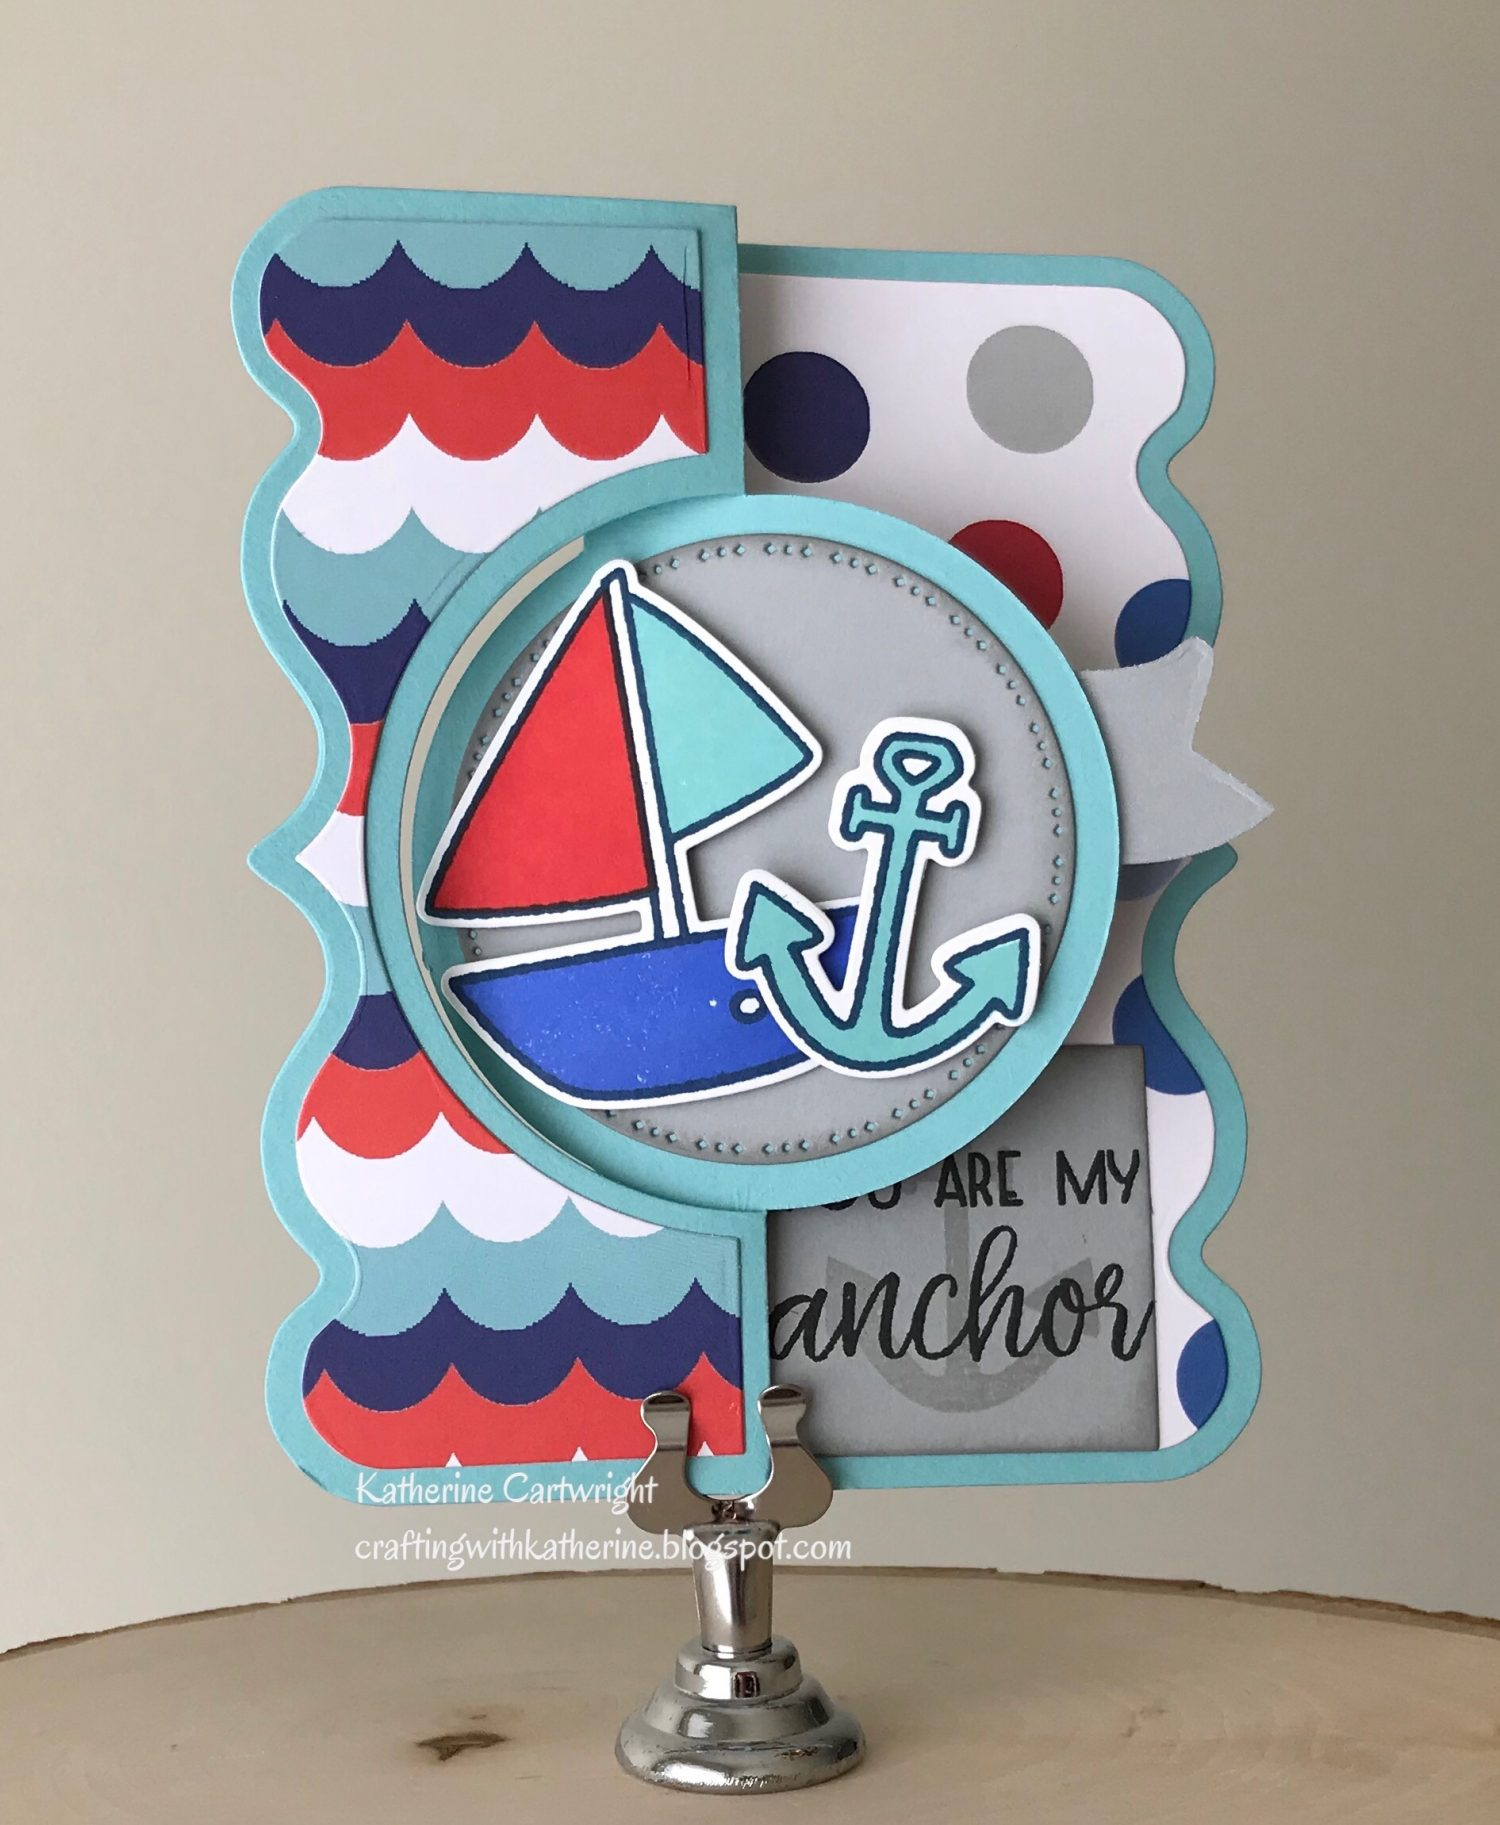 Handmade Card: Sailboat2stamp and Double Banner